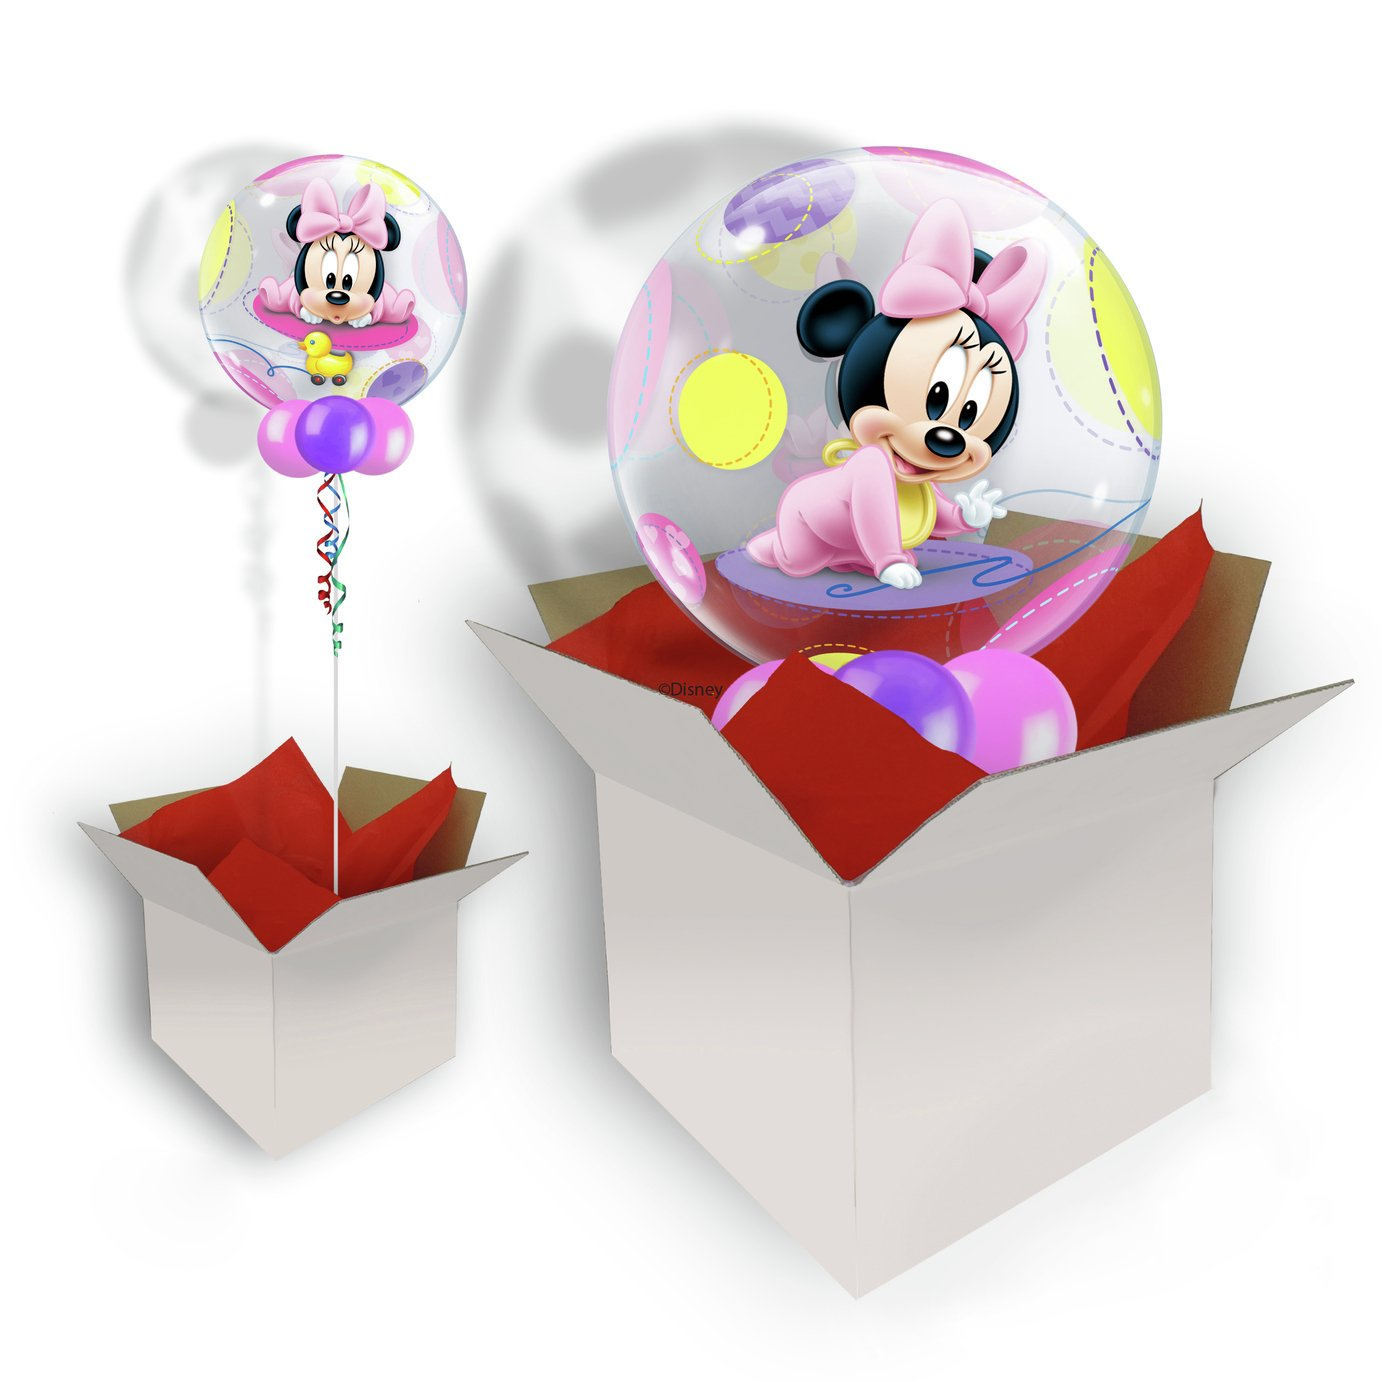 Disney Baby Minnie Mouse Balloon In a Box